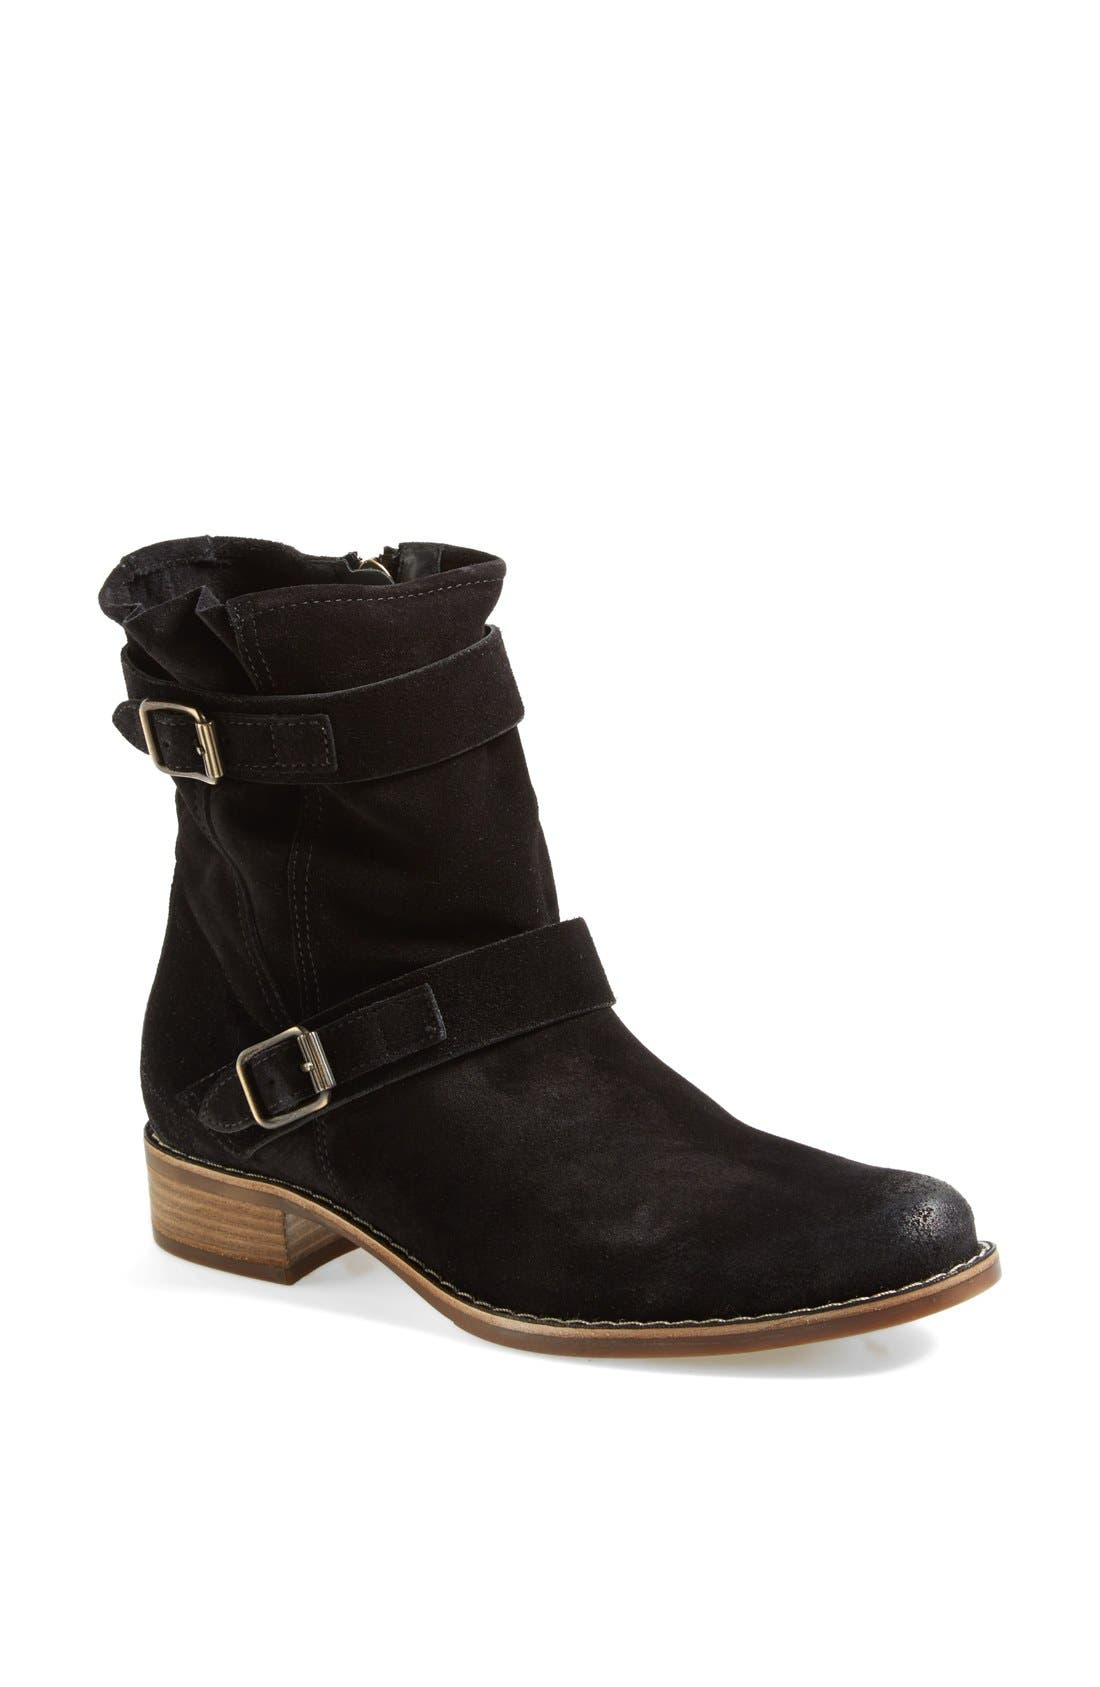 'Ally' Belted Suede Moto Boot,                             Main thumbnail 1, color,                             002